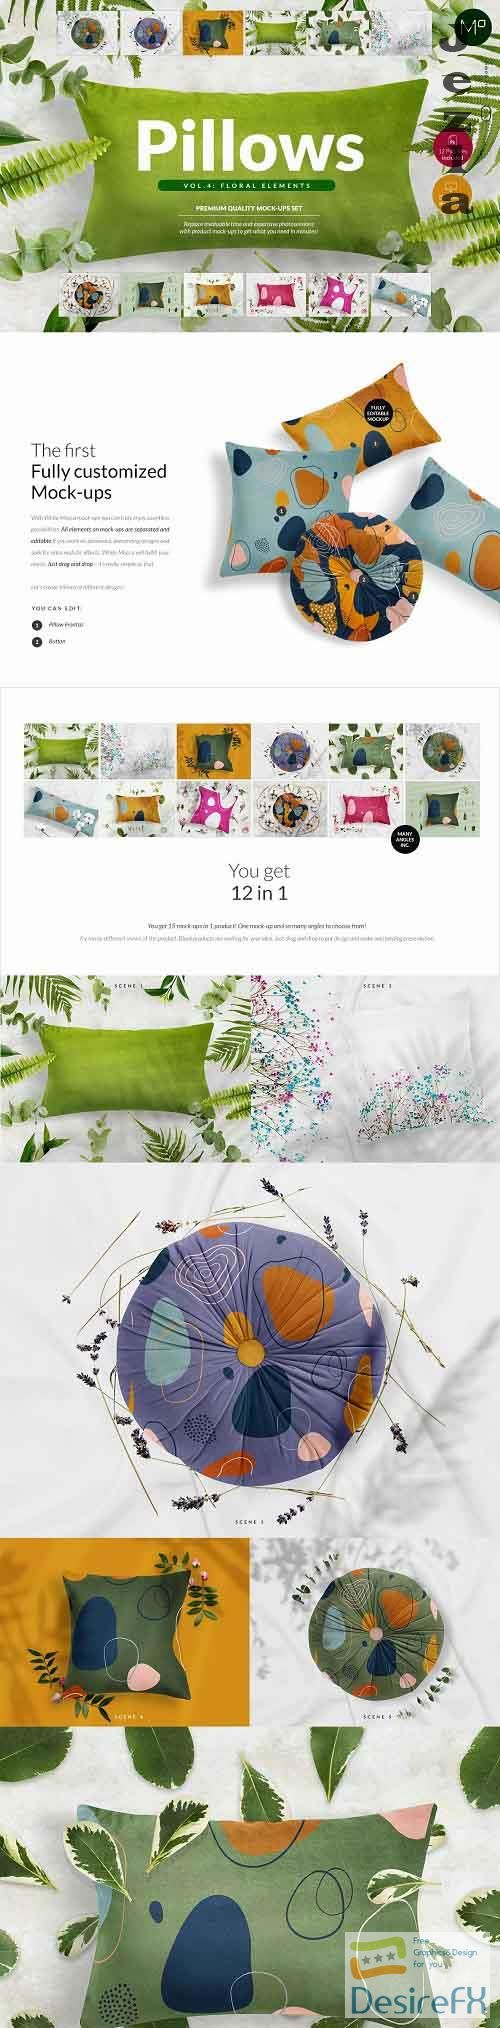 CreativeMarket - Pillows vol.4: with floral elements 5367751